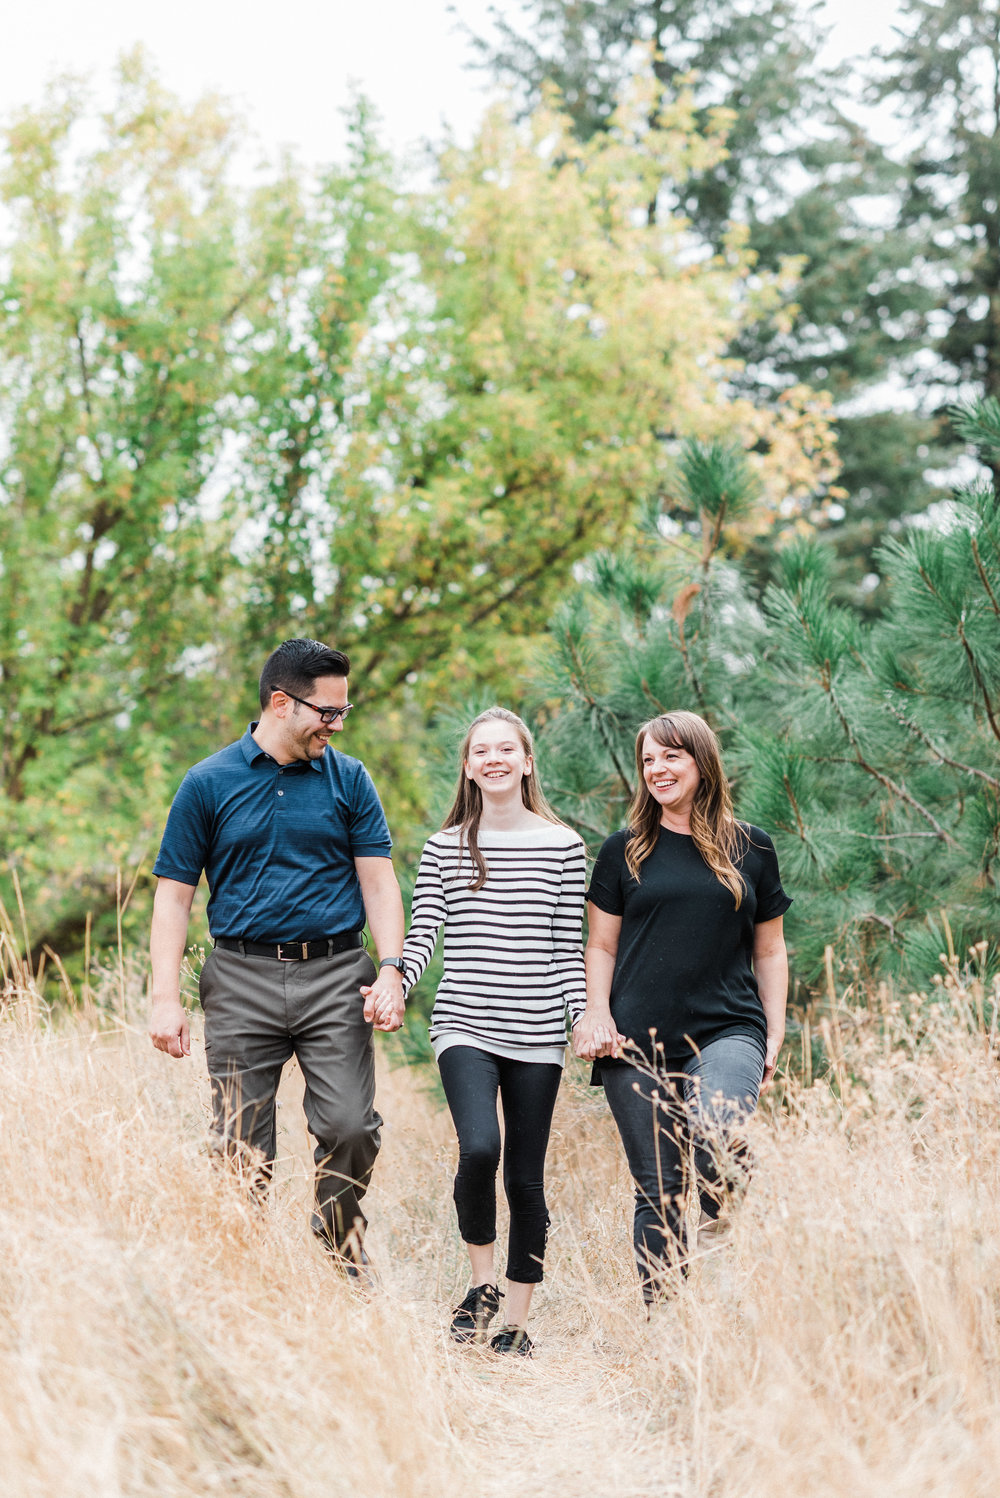 spokane_fall_family_photography_session (15 of 27).jpg